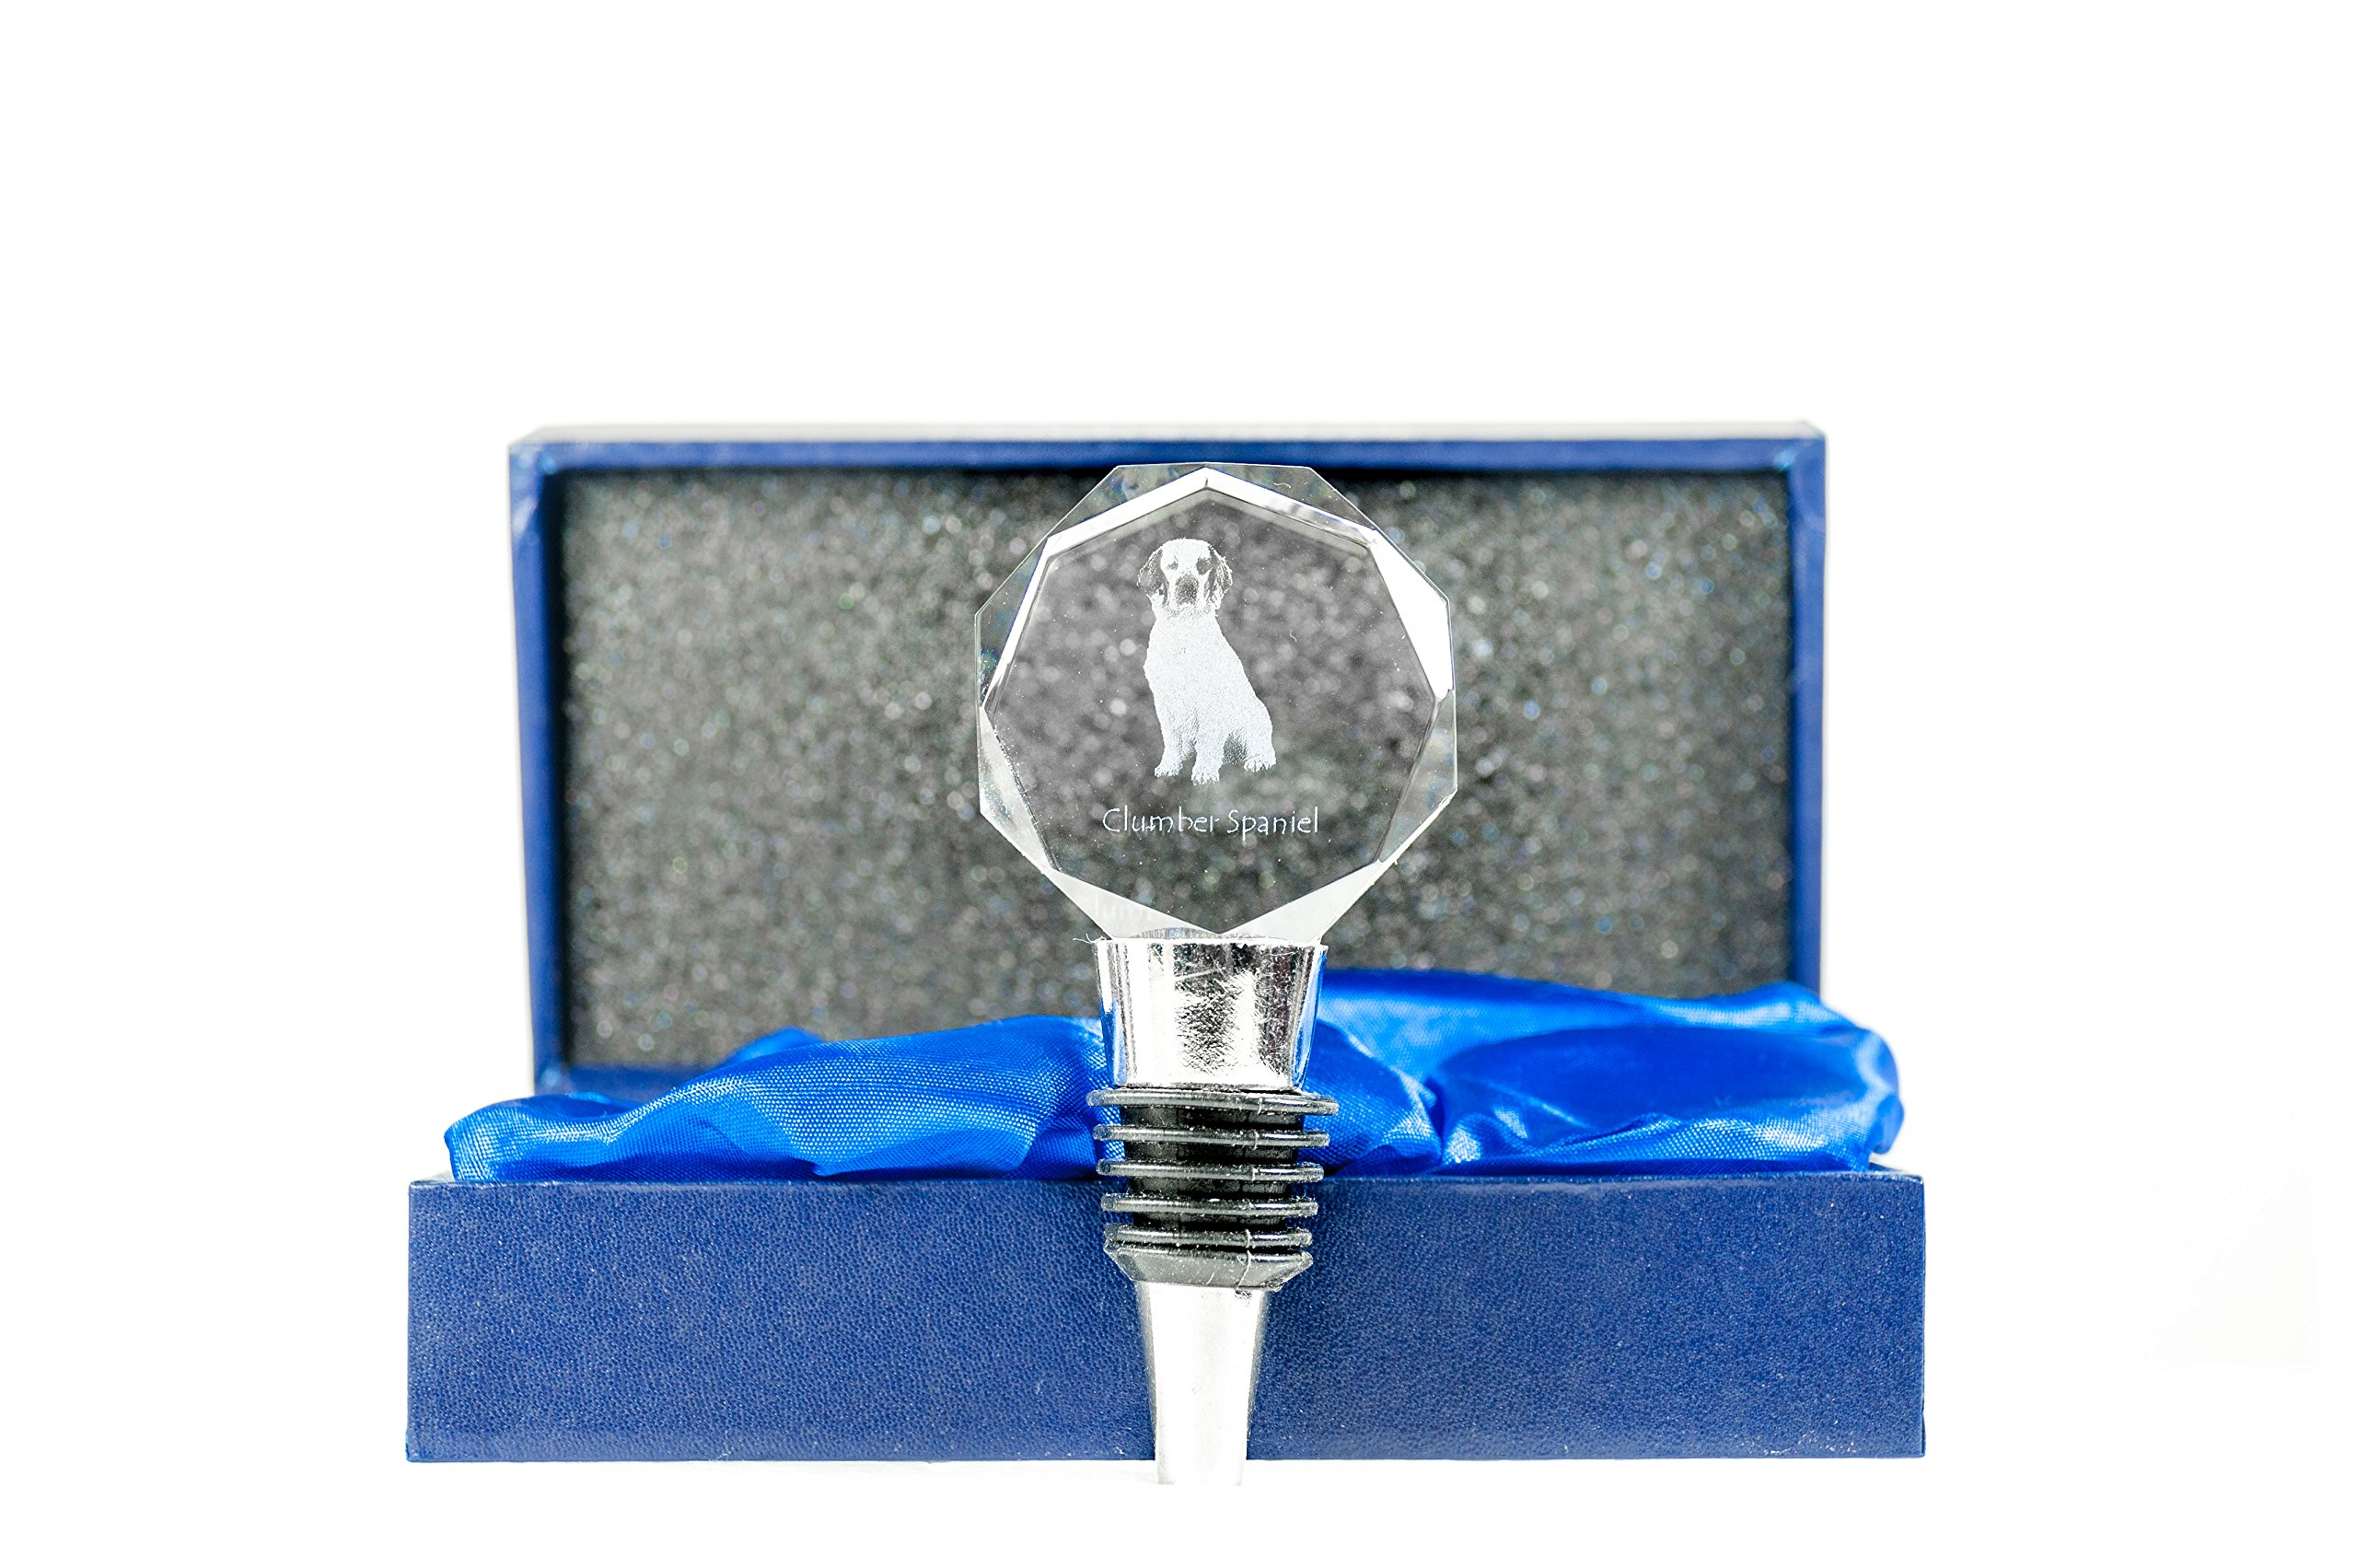 Clumber Spaniel, Crystal Wine Stopper with Dog, Wine and Dog Lovers, High Quality, Exceptional Gift by Art Dog Ltd.